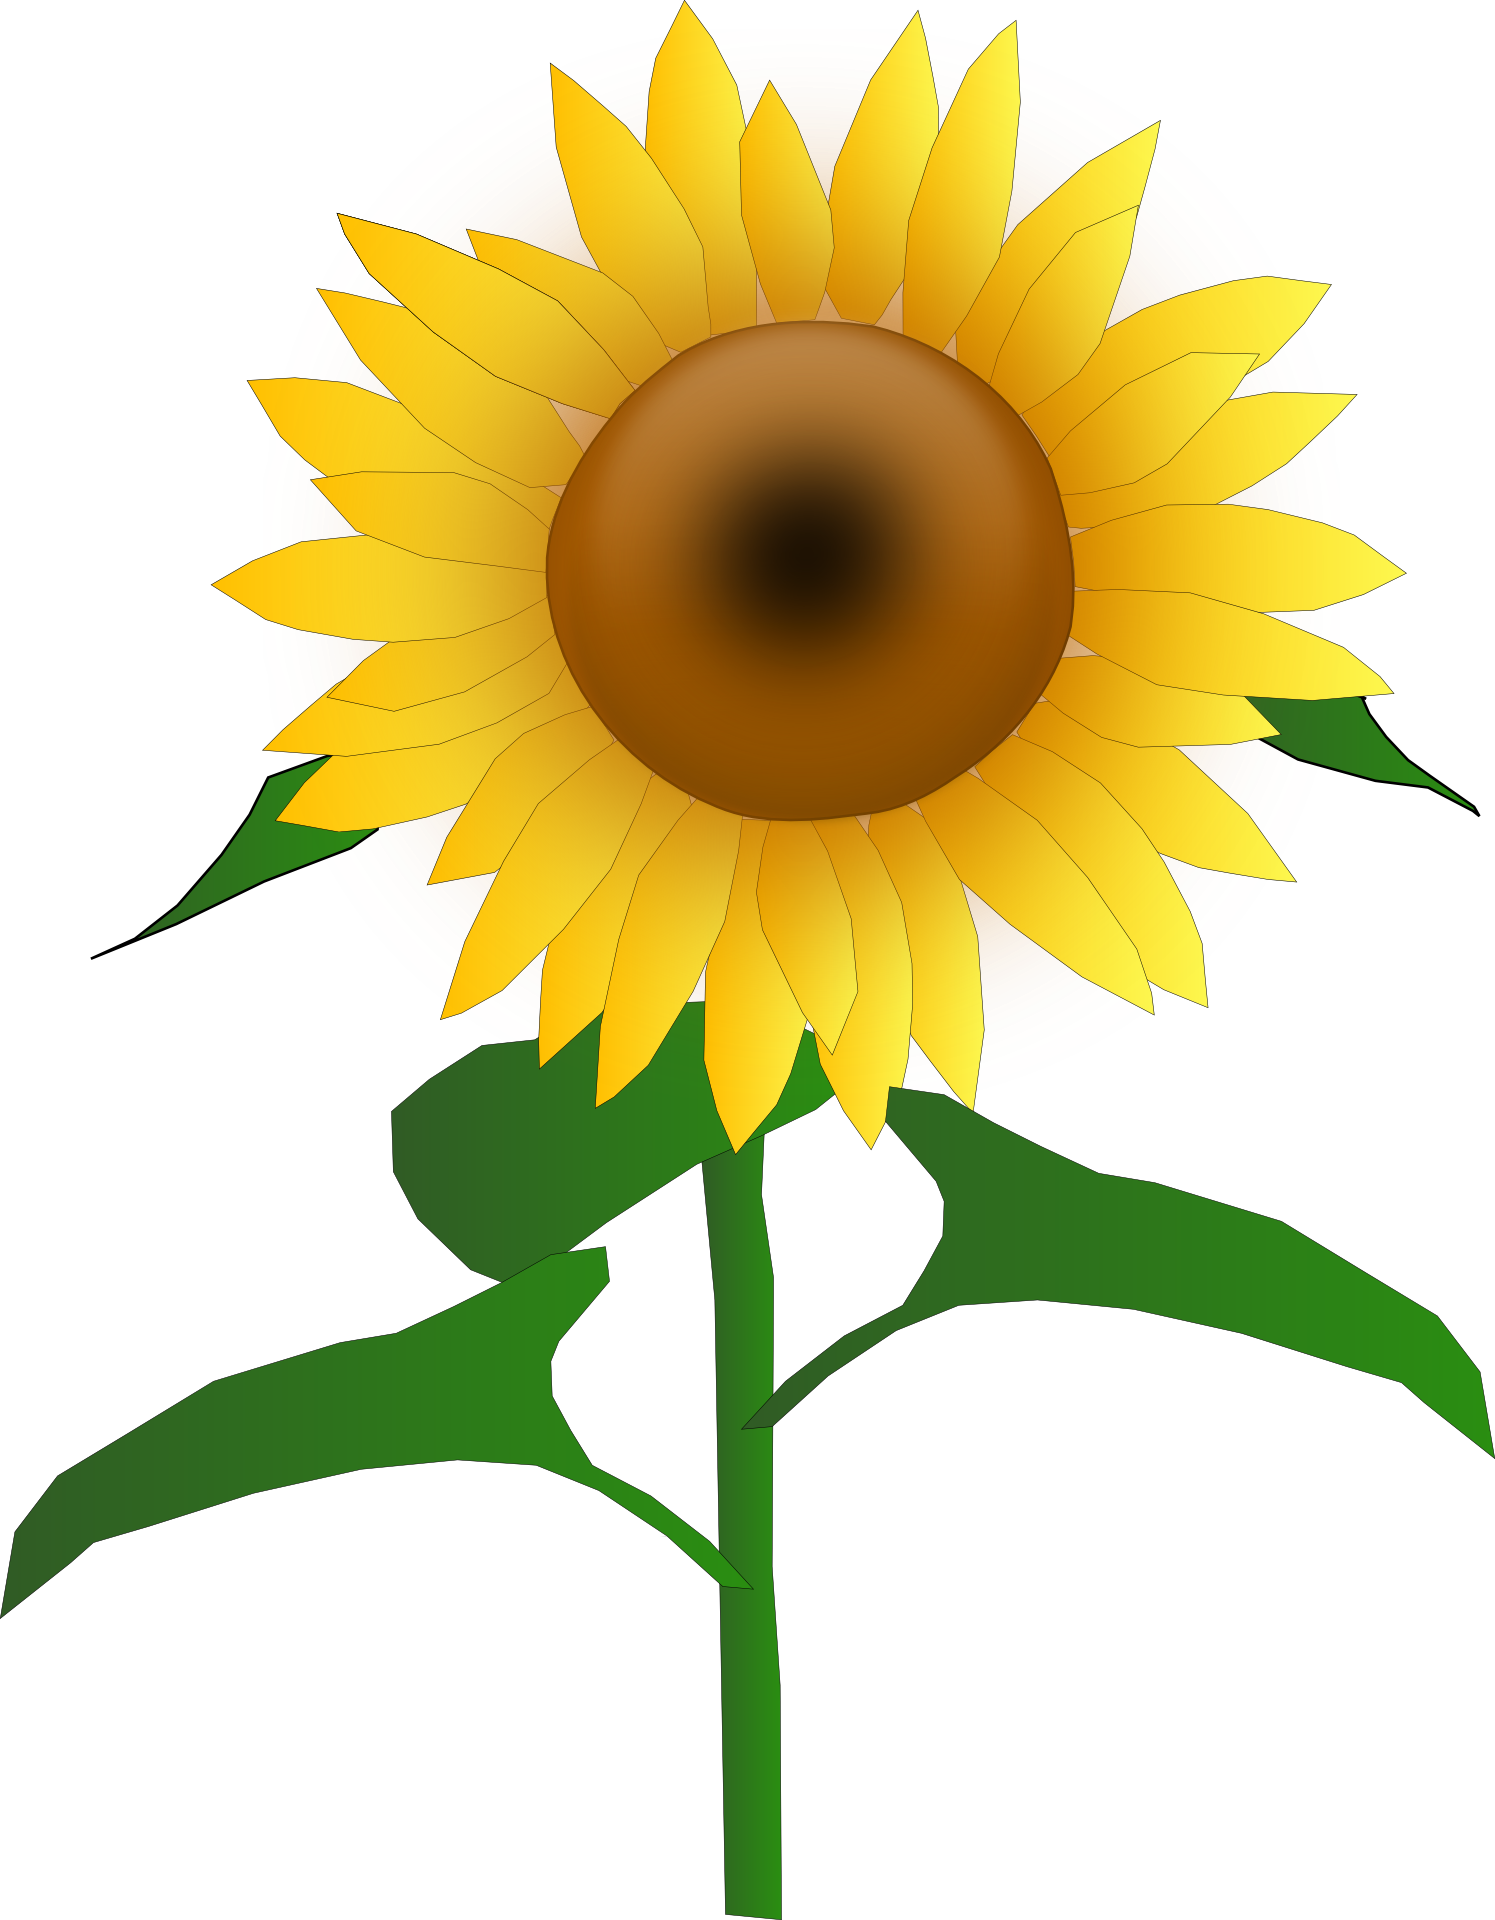 1495x1920 Free To Use Amp Public Domain Sunflower Clip Art